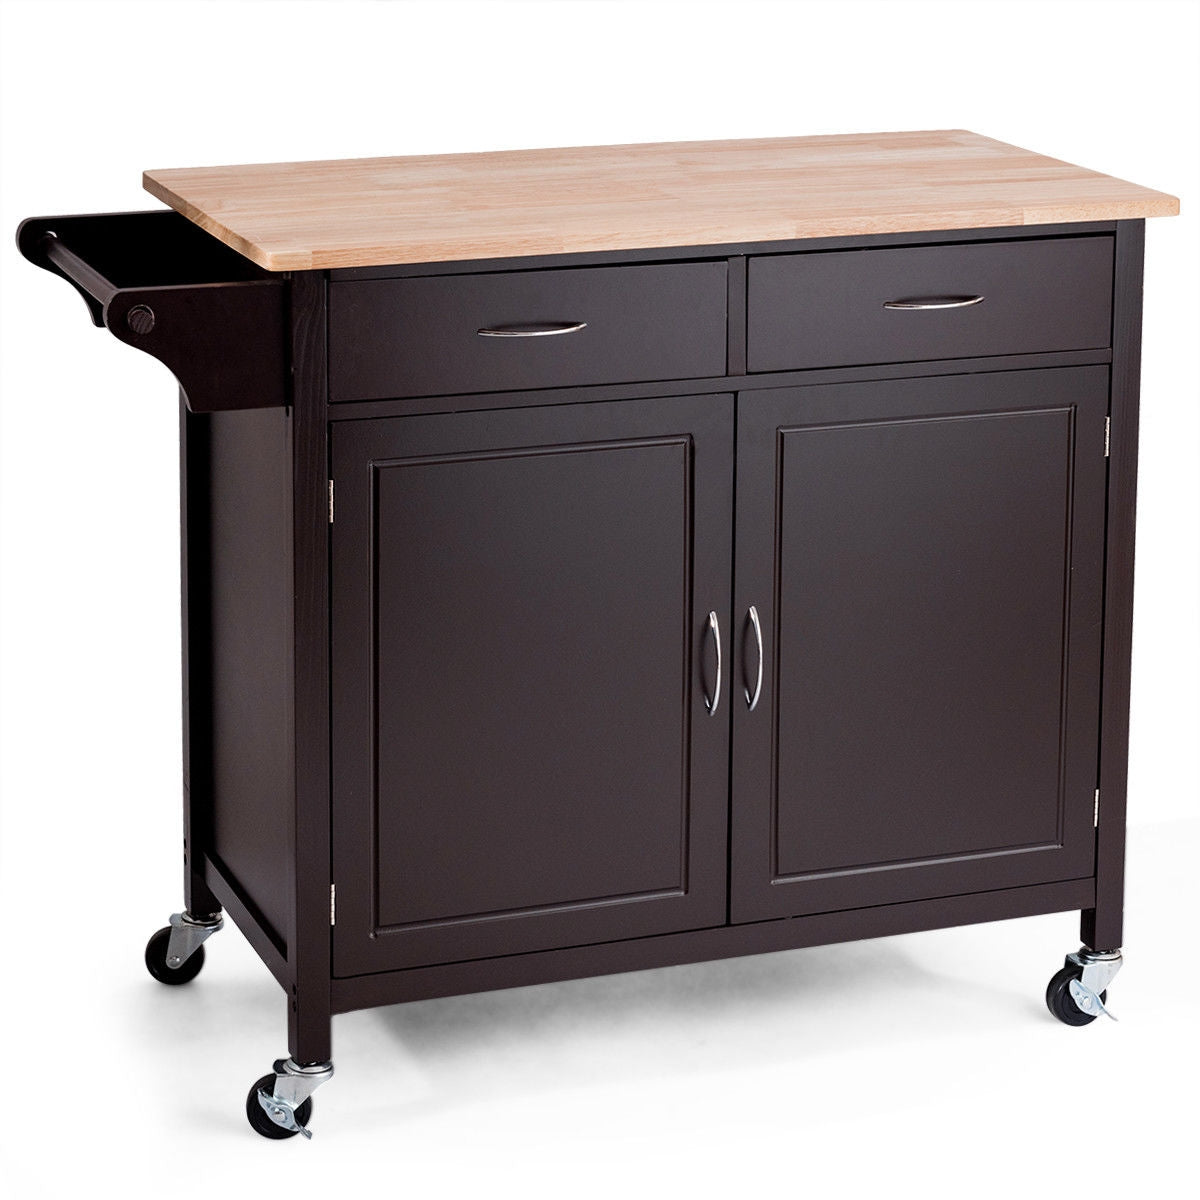 Modern Rolling Kitchen Cart Island with Wooden Top-Brown